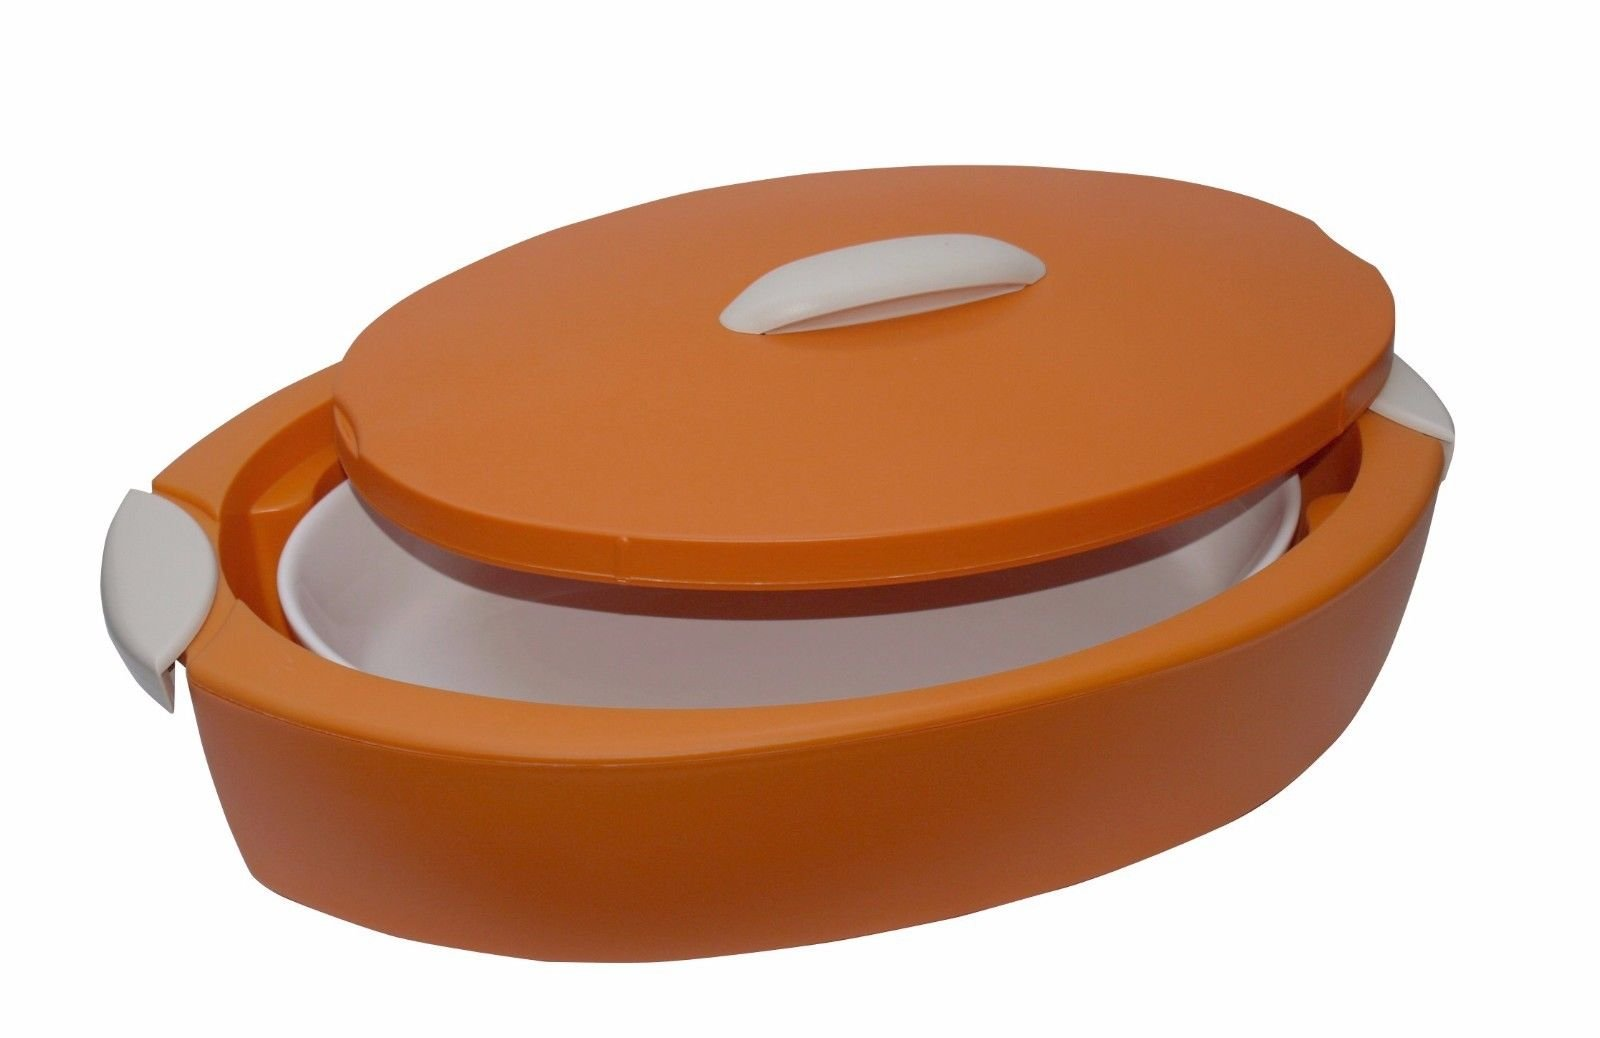 ENJOY OVAL INSULATED FOOD SERVER WITH OVENPROOF DISH ''TUTTOCALDO'' 3 Lts - Orange by Enjoy